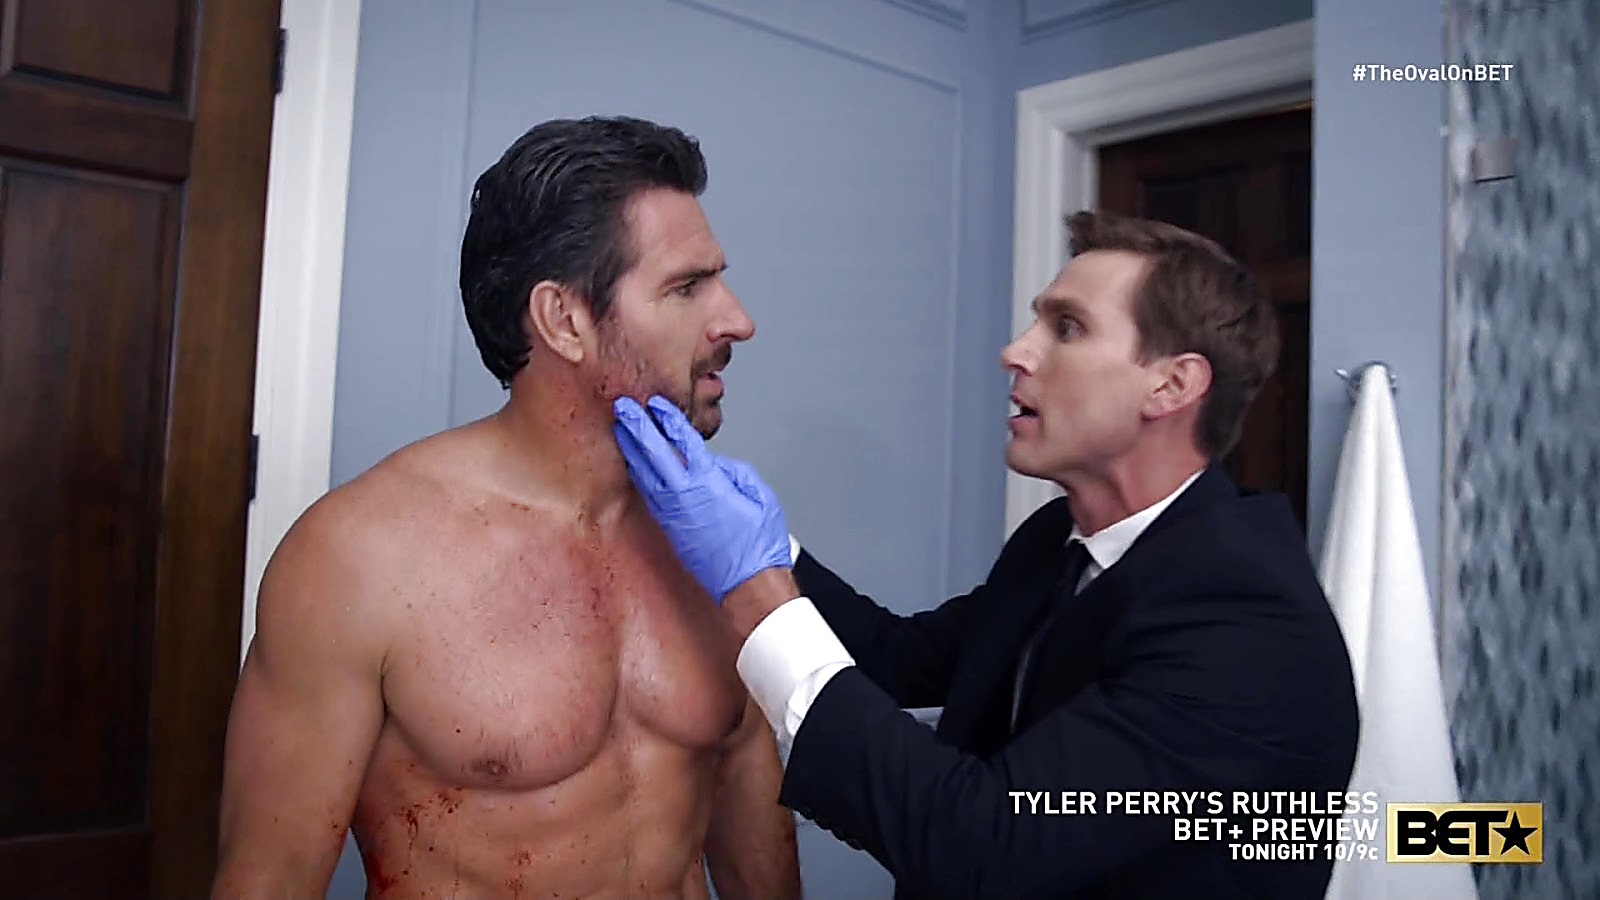 Ed Quinn sexy shirtless scene May 9, 2020, 1pm